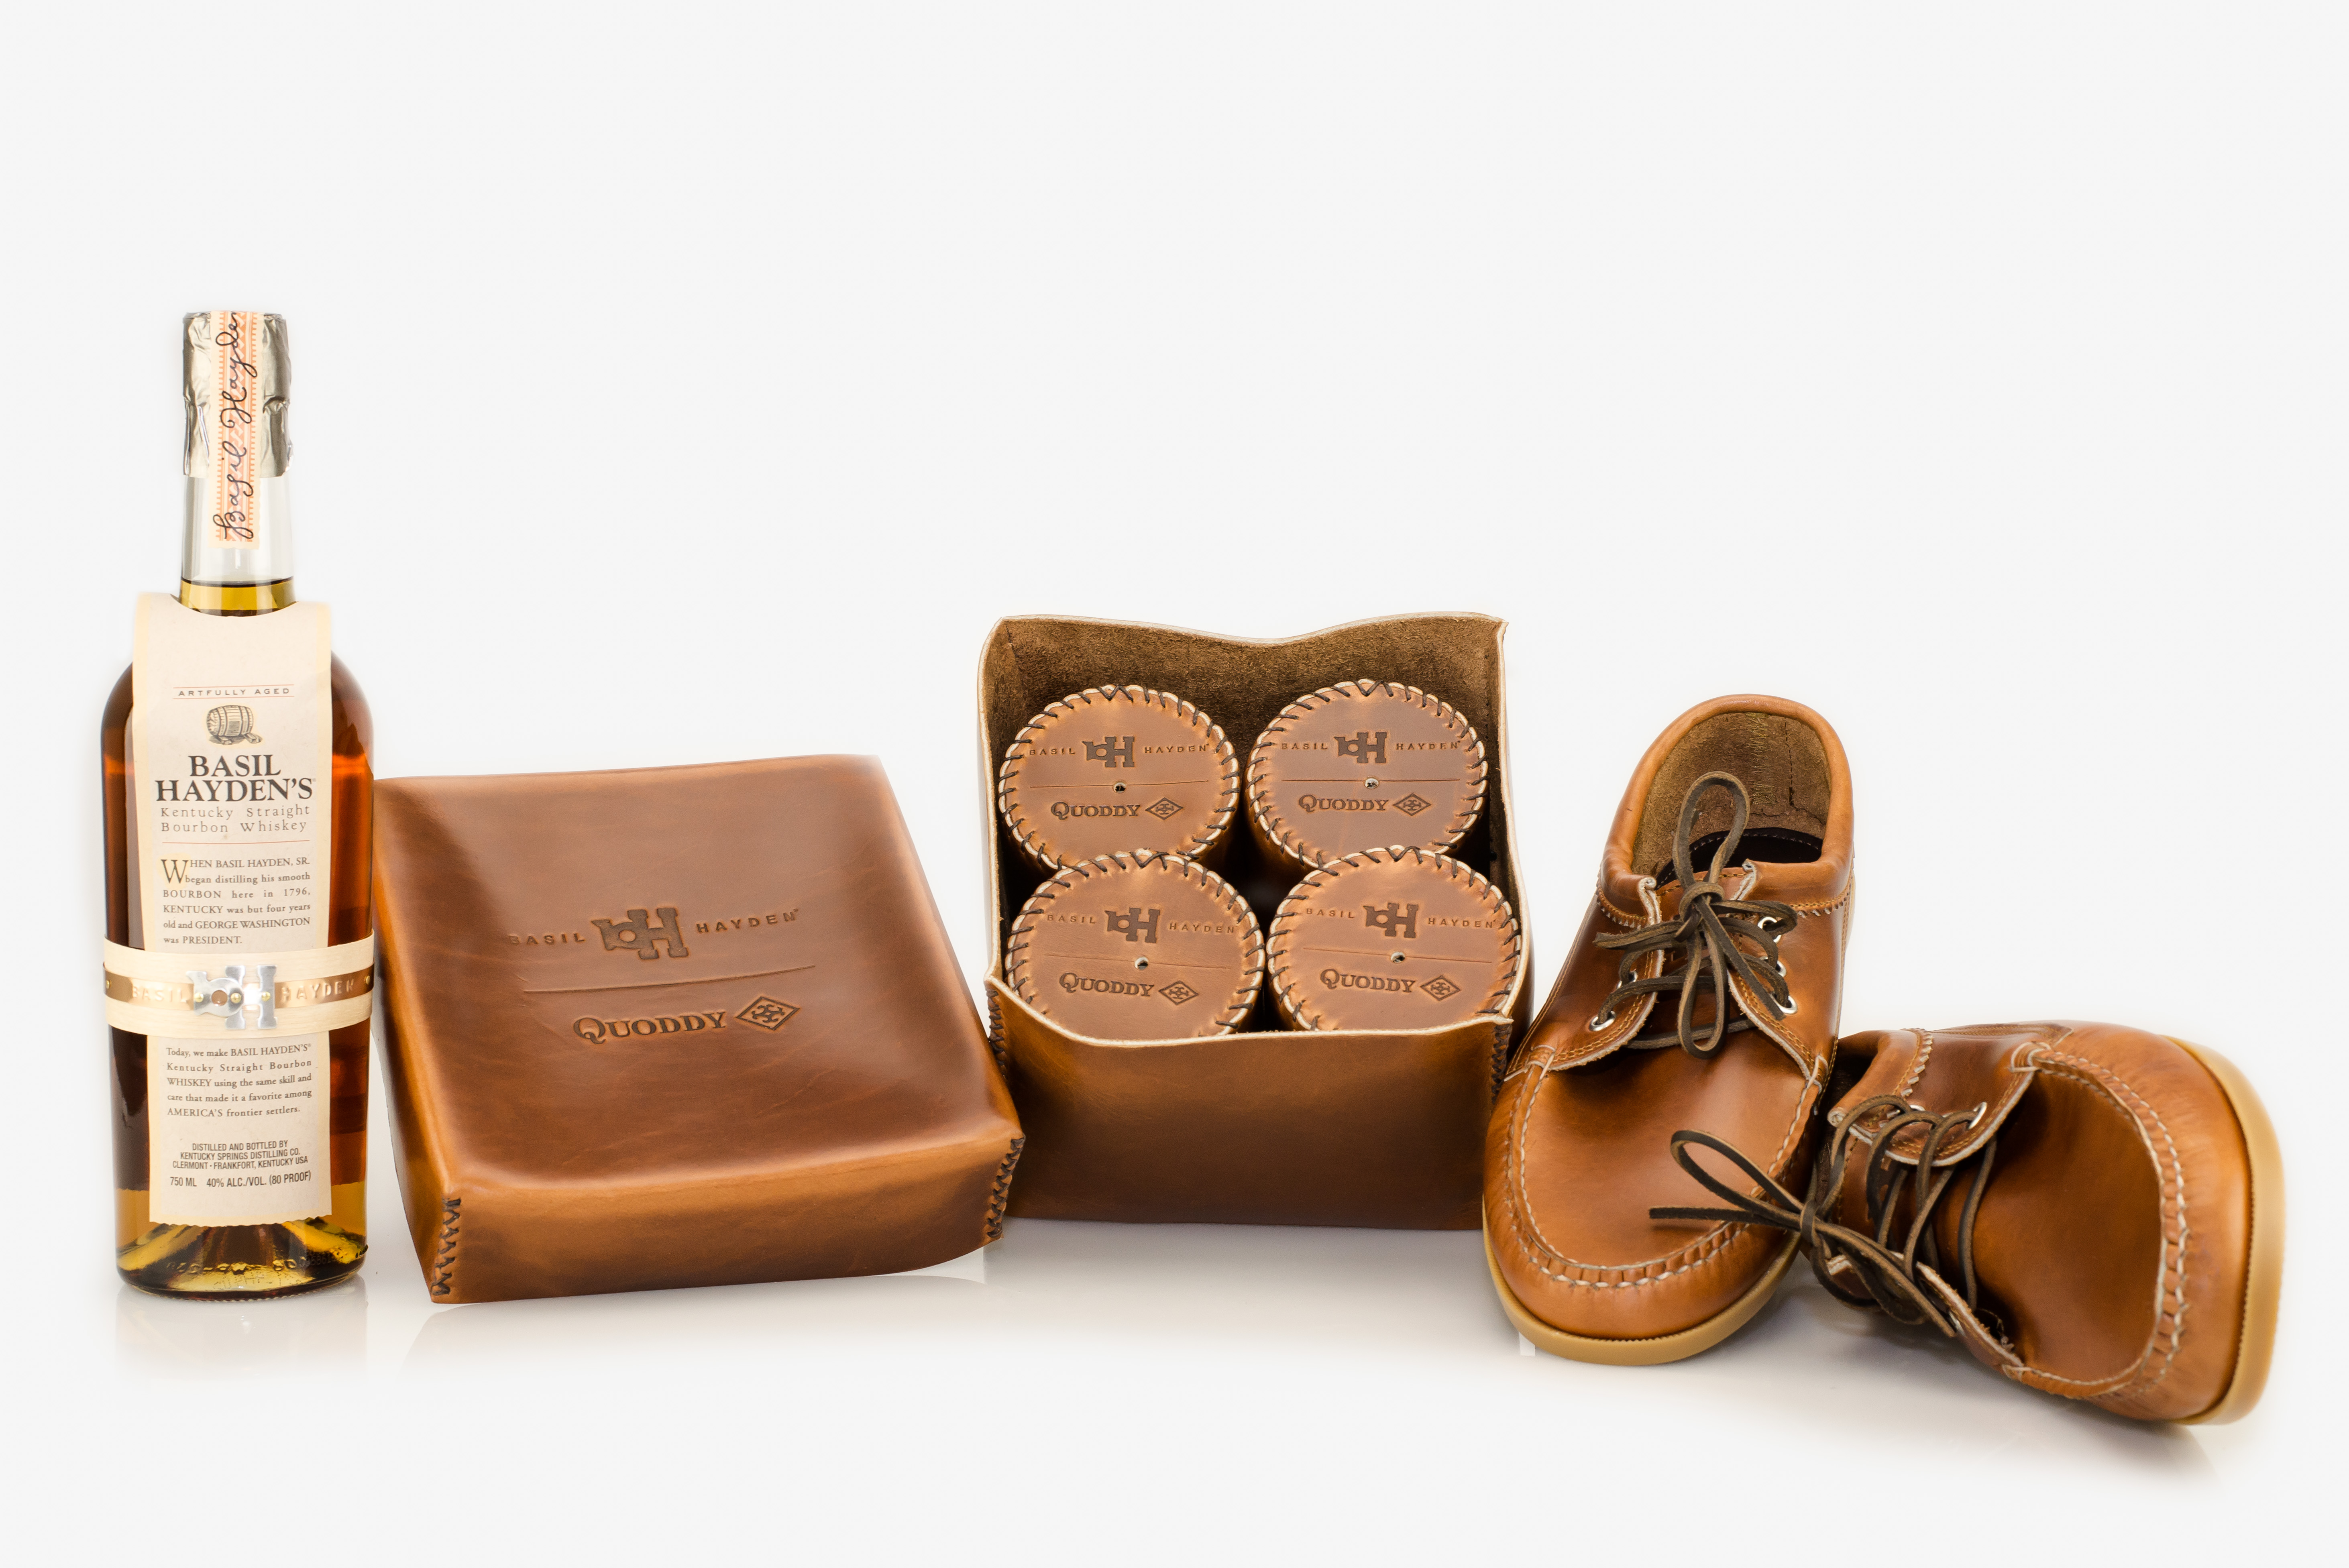 Basil Hayden is planning ahead for its holiday offering with a $400 gift set that features Quoddy shoes and leather-wrapped glasses.